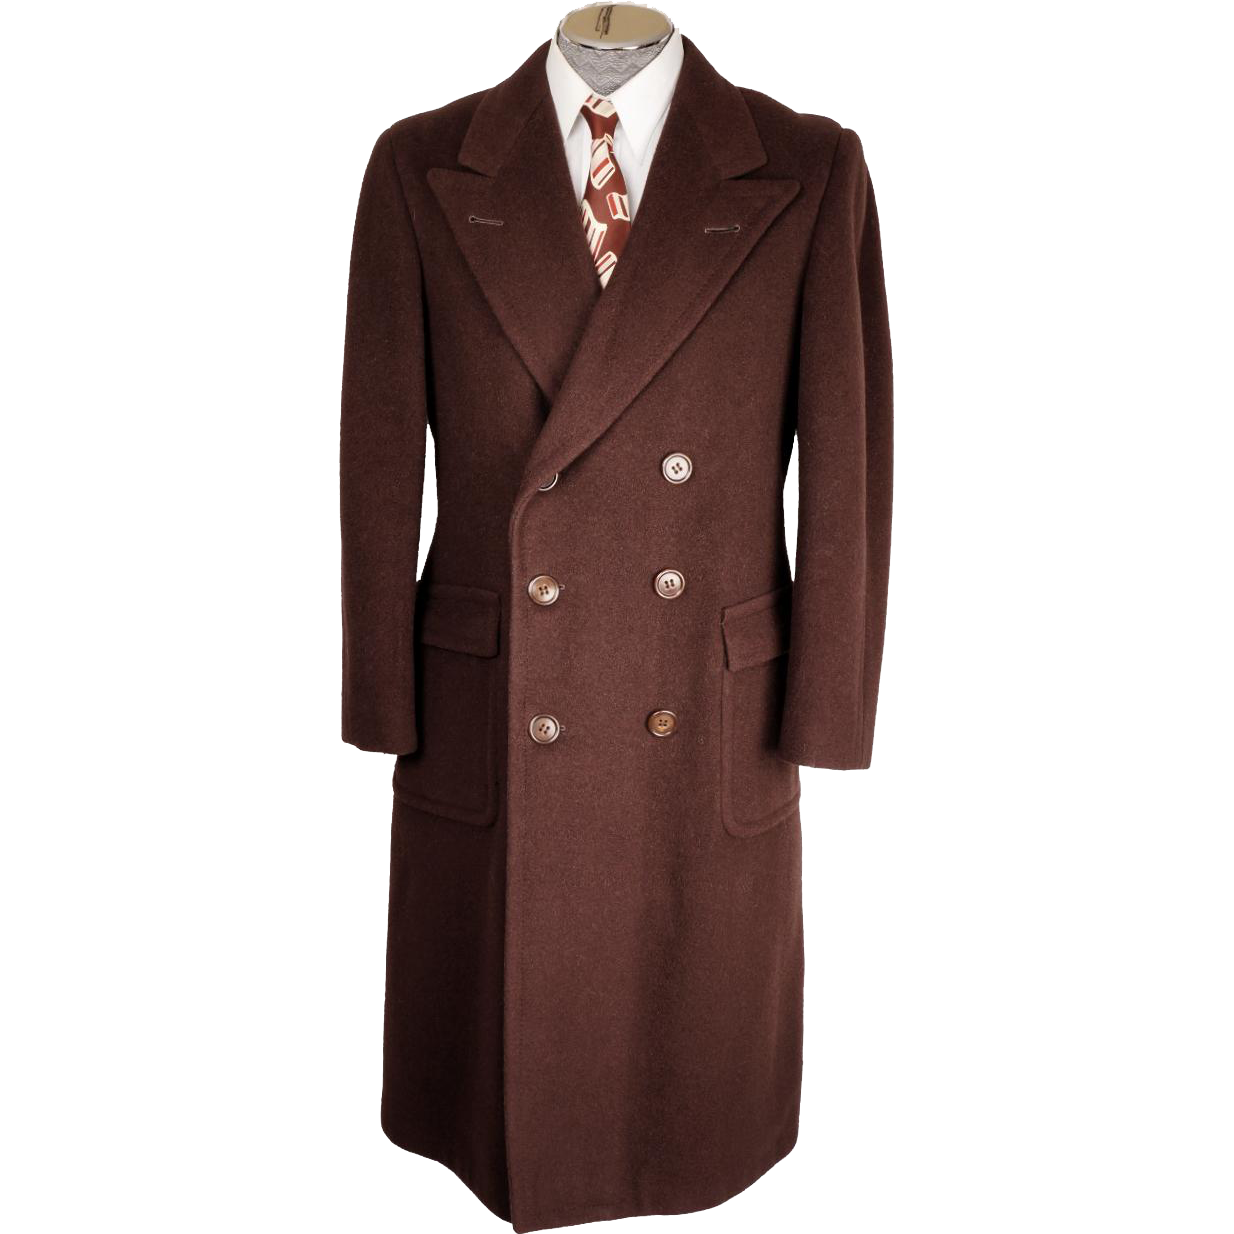 Mens Wool Coats. A must-have in any guy's winter wardrobe? A wool coat! Slip one on for instant style and warmth. For the Work Week Love a sleek, minimalist look?